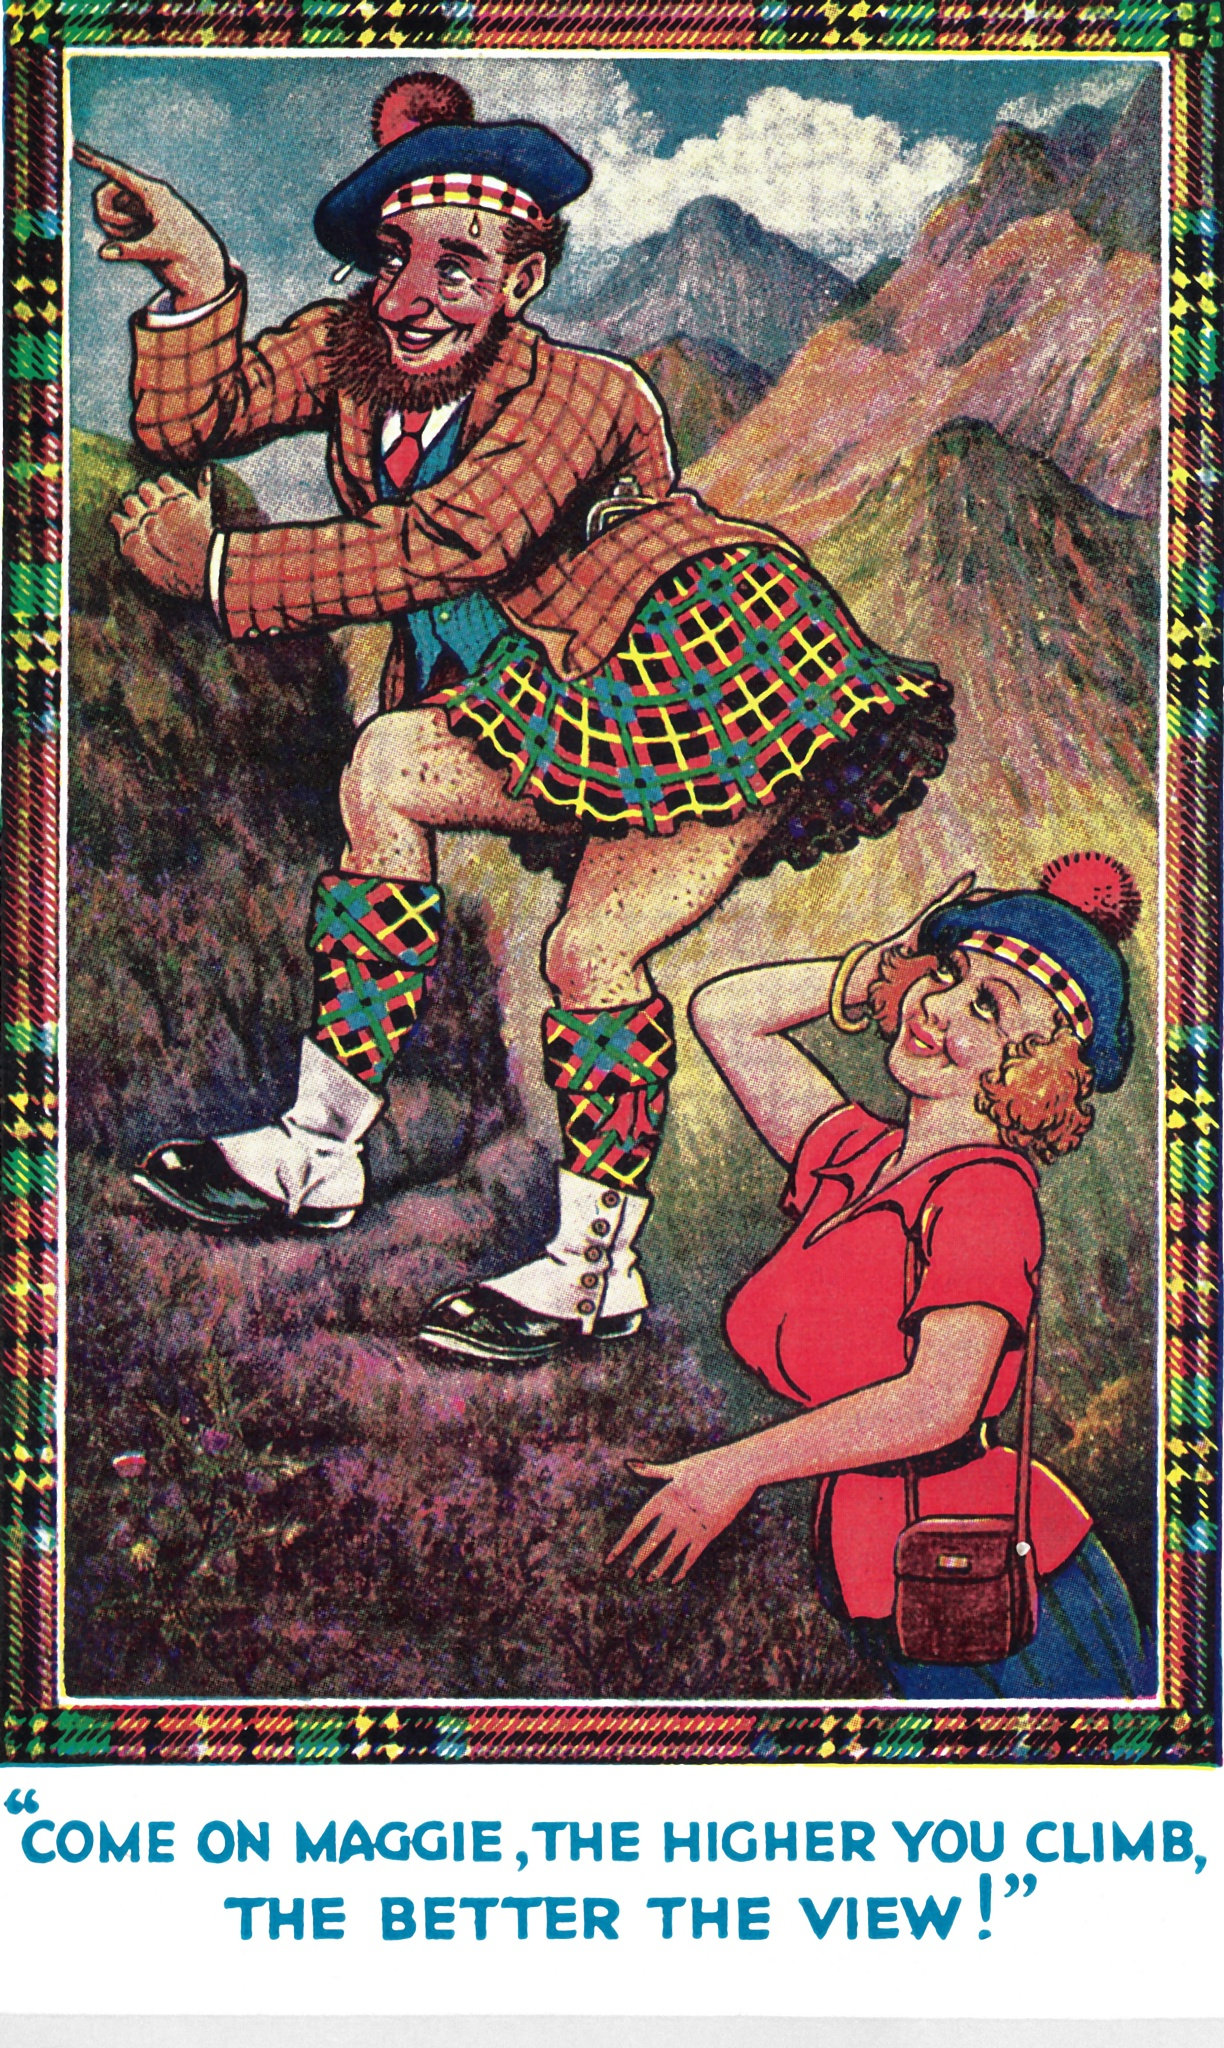 Vintage Scottish Joke 5 by Lars-Toralf Utnes Storstrand